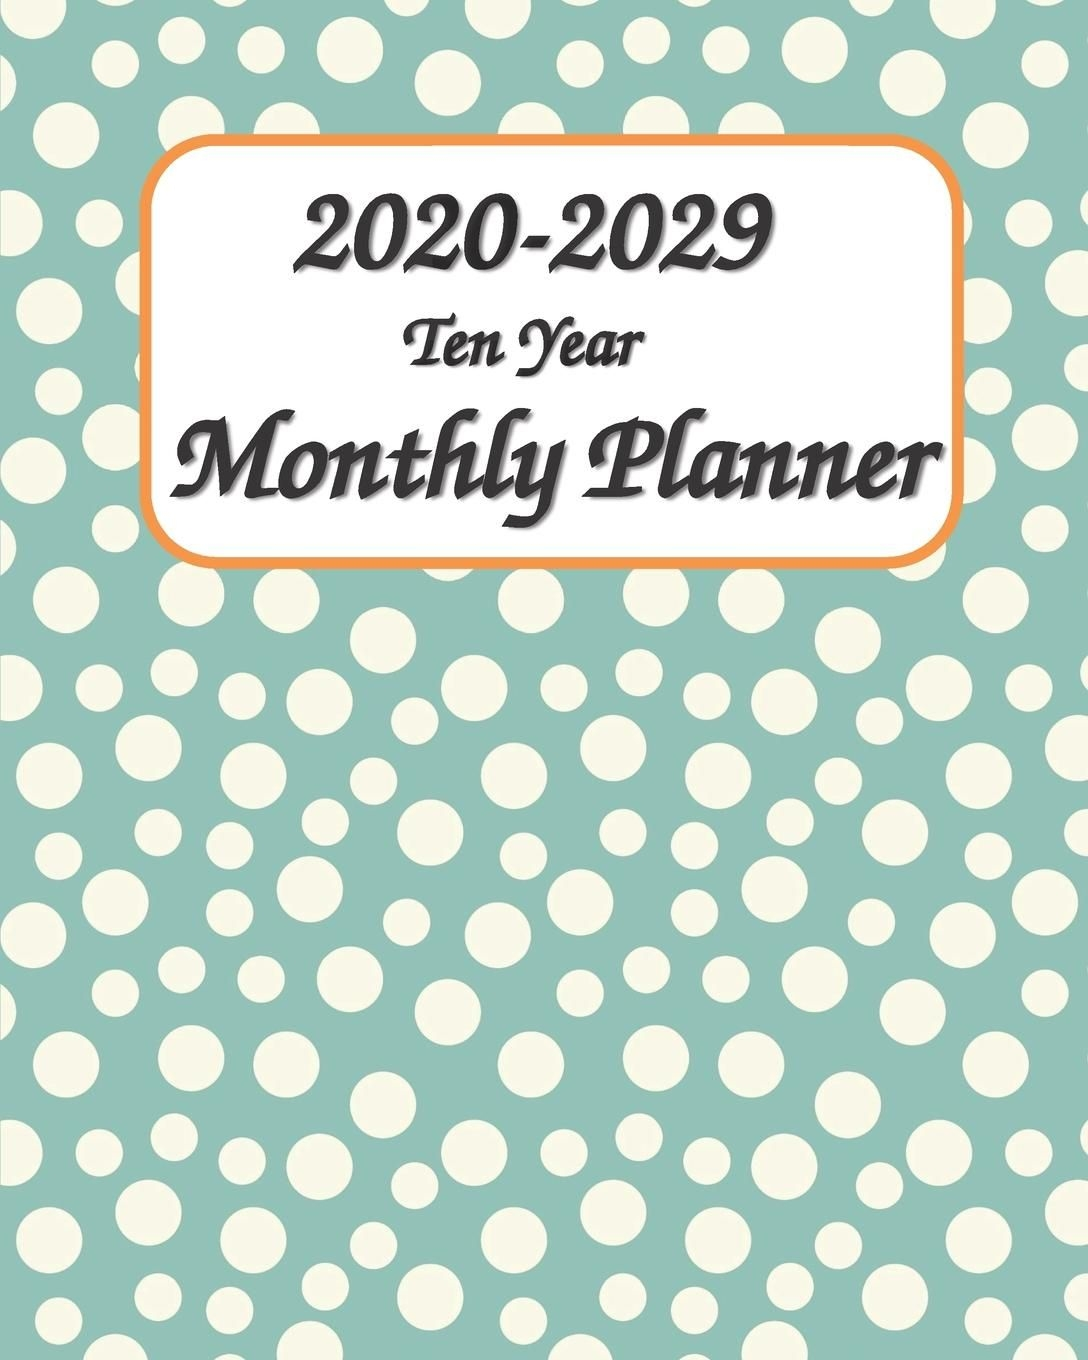 2020 2029 Ten Year Monthly Planner 8×10 : Ten Years Monthly Calendar Planner 120 Months Planner And Calendar January 2020 To December 2029 Monthly